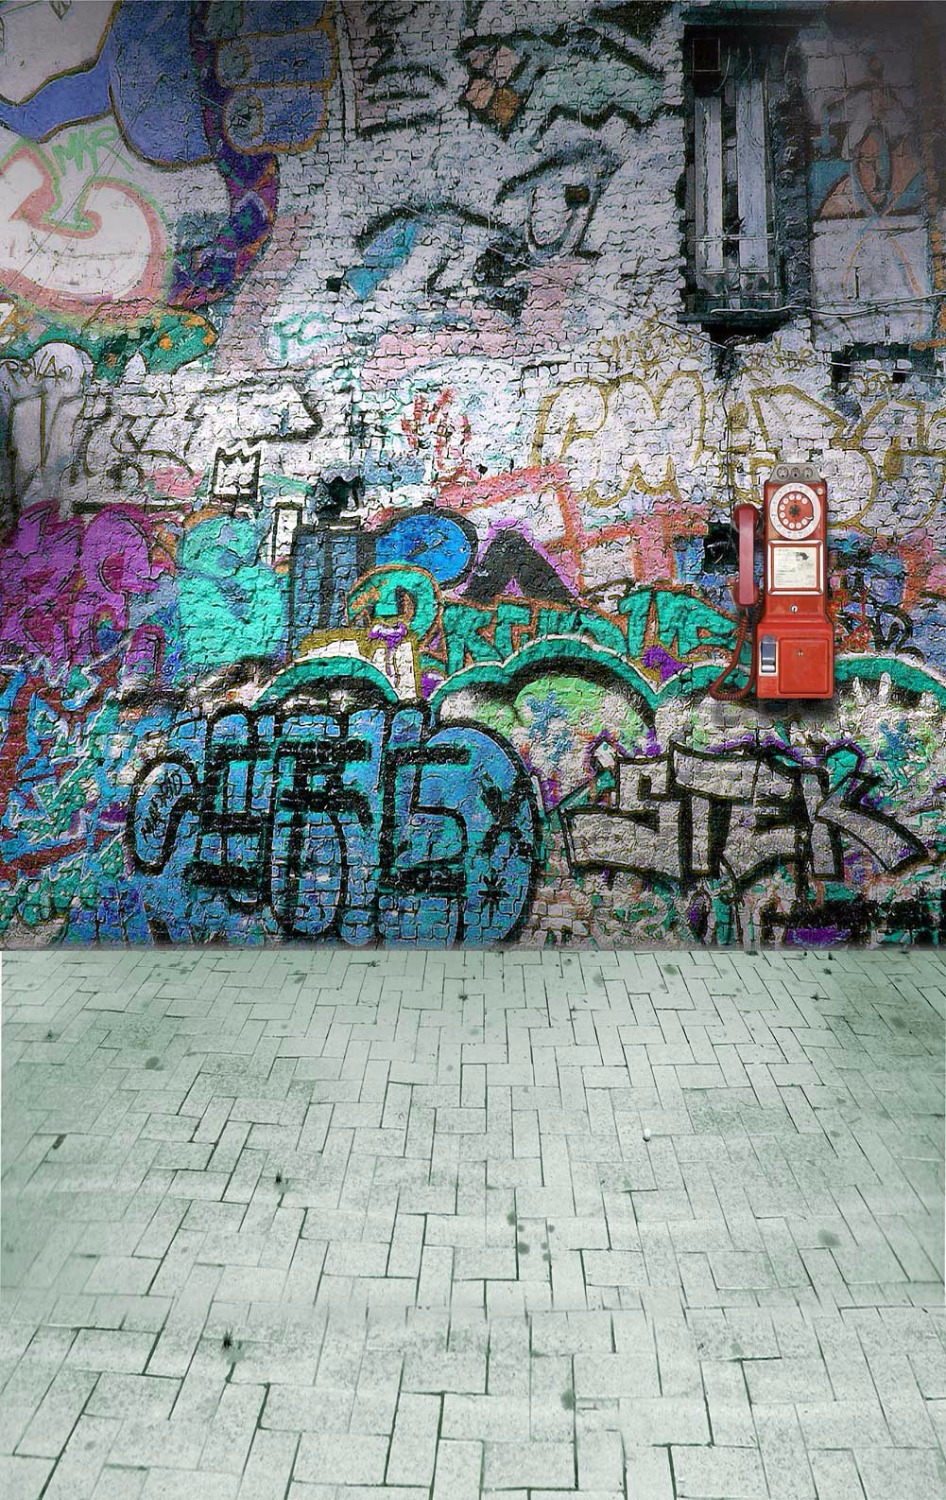 KATE Photo toiles de fond Graffiti brique mur fond abstrait Texture toiles de fond enfants photographie fond pour Studio